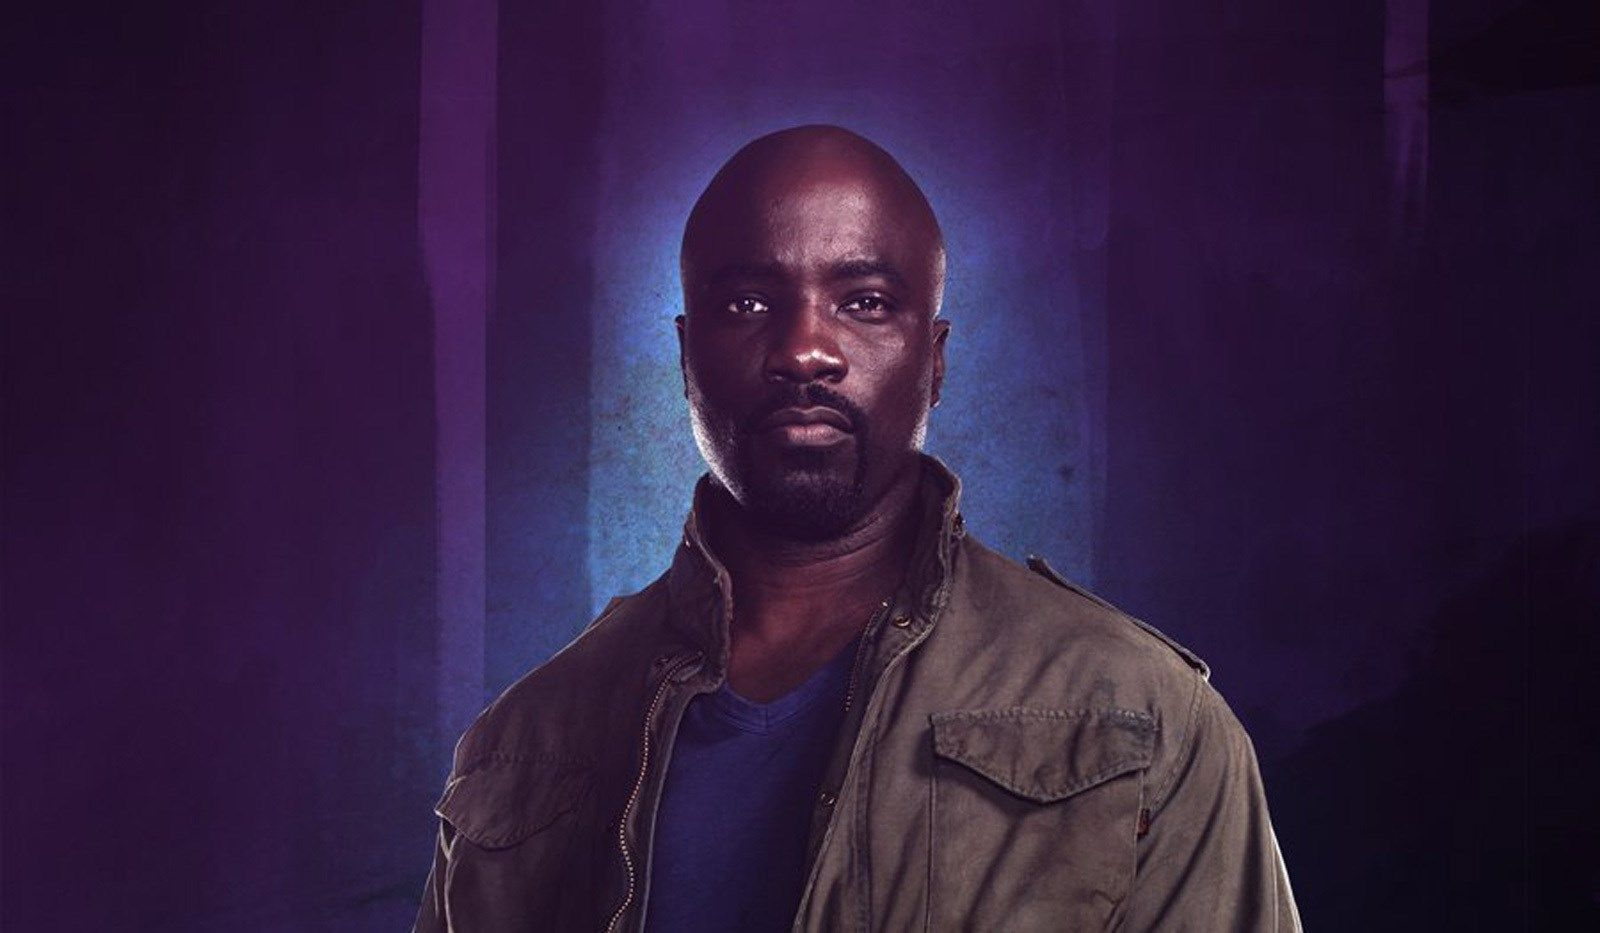 luke cage picture: images, walls, pics, Winthrop Williams 2016-08-10